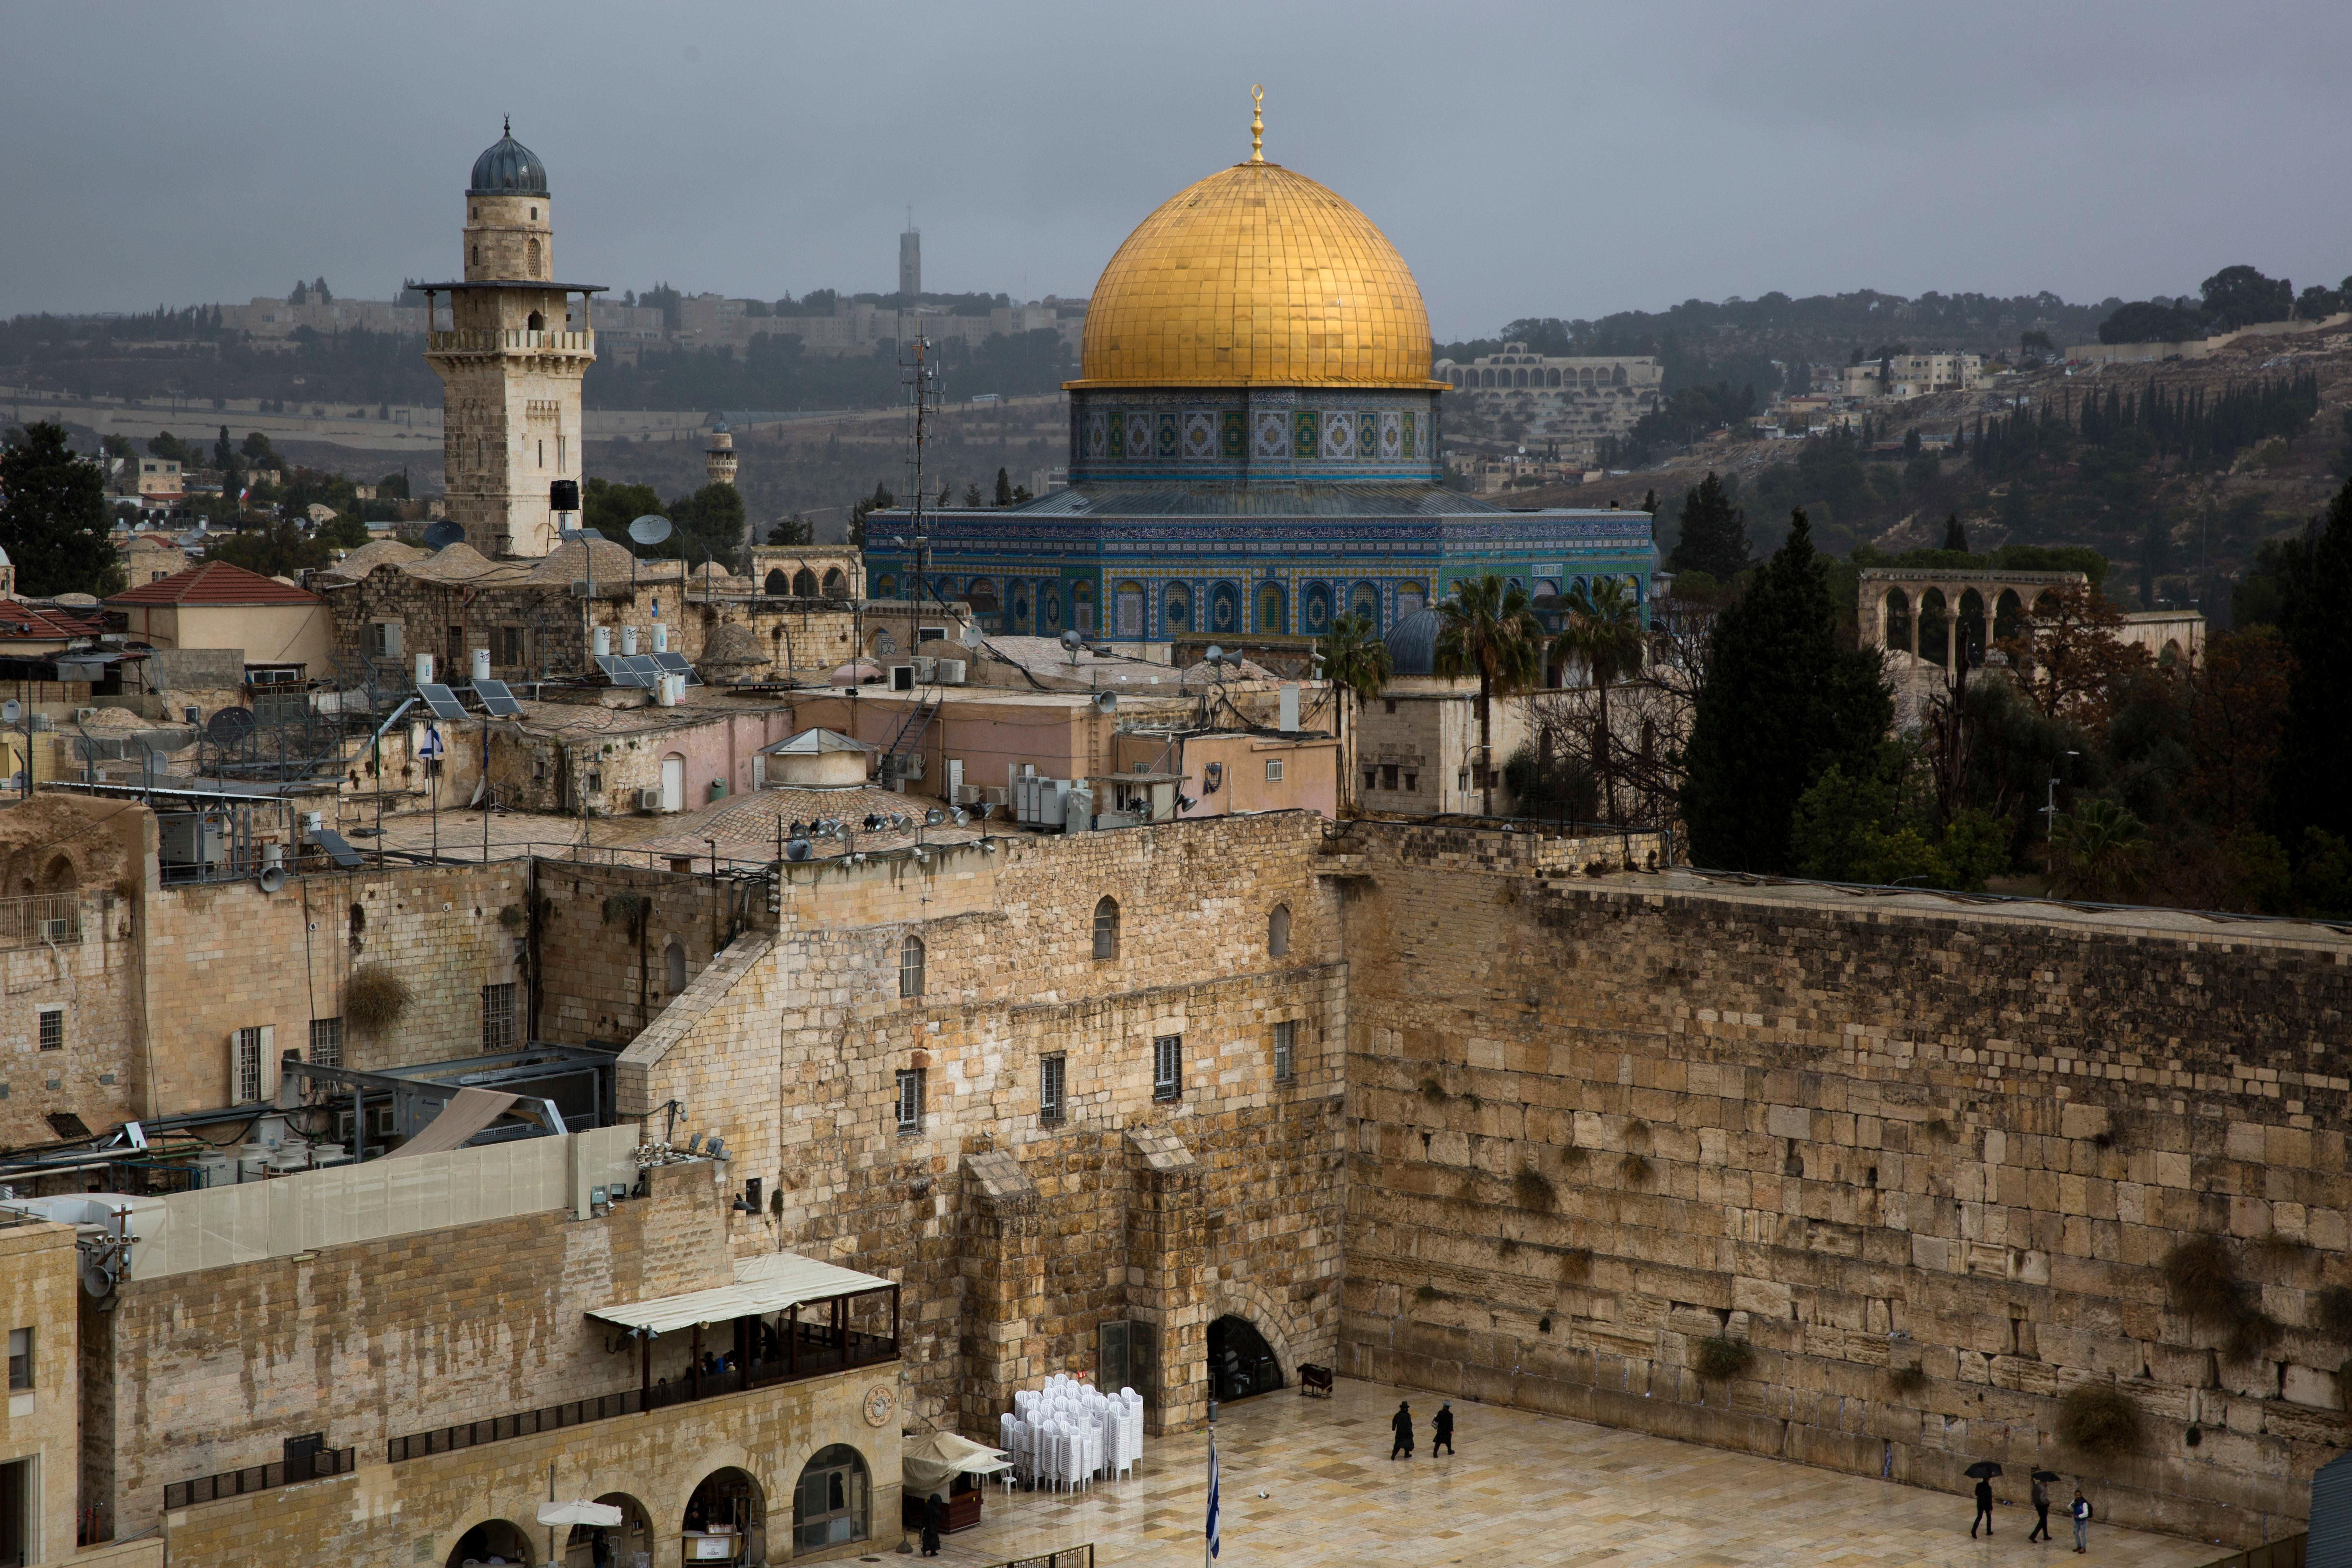 A view of the Western Wall and the Dome of the Rock, some of the holiest sites for for Jews and Muslims, is seen in Jerusalem's Old City, Wednesday, Dec. 6, 2017. U.S. officials say President Donald Trump will recognize Jerusalem as Israel's capital Wednesday, Dec. 6, and instruct the State Department to begin the multi-year process of moving the American embassy from Tel Aviv to the holy city. His decision could have deep repercussions across the region. (AP Photo/Oded Balilty)